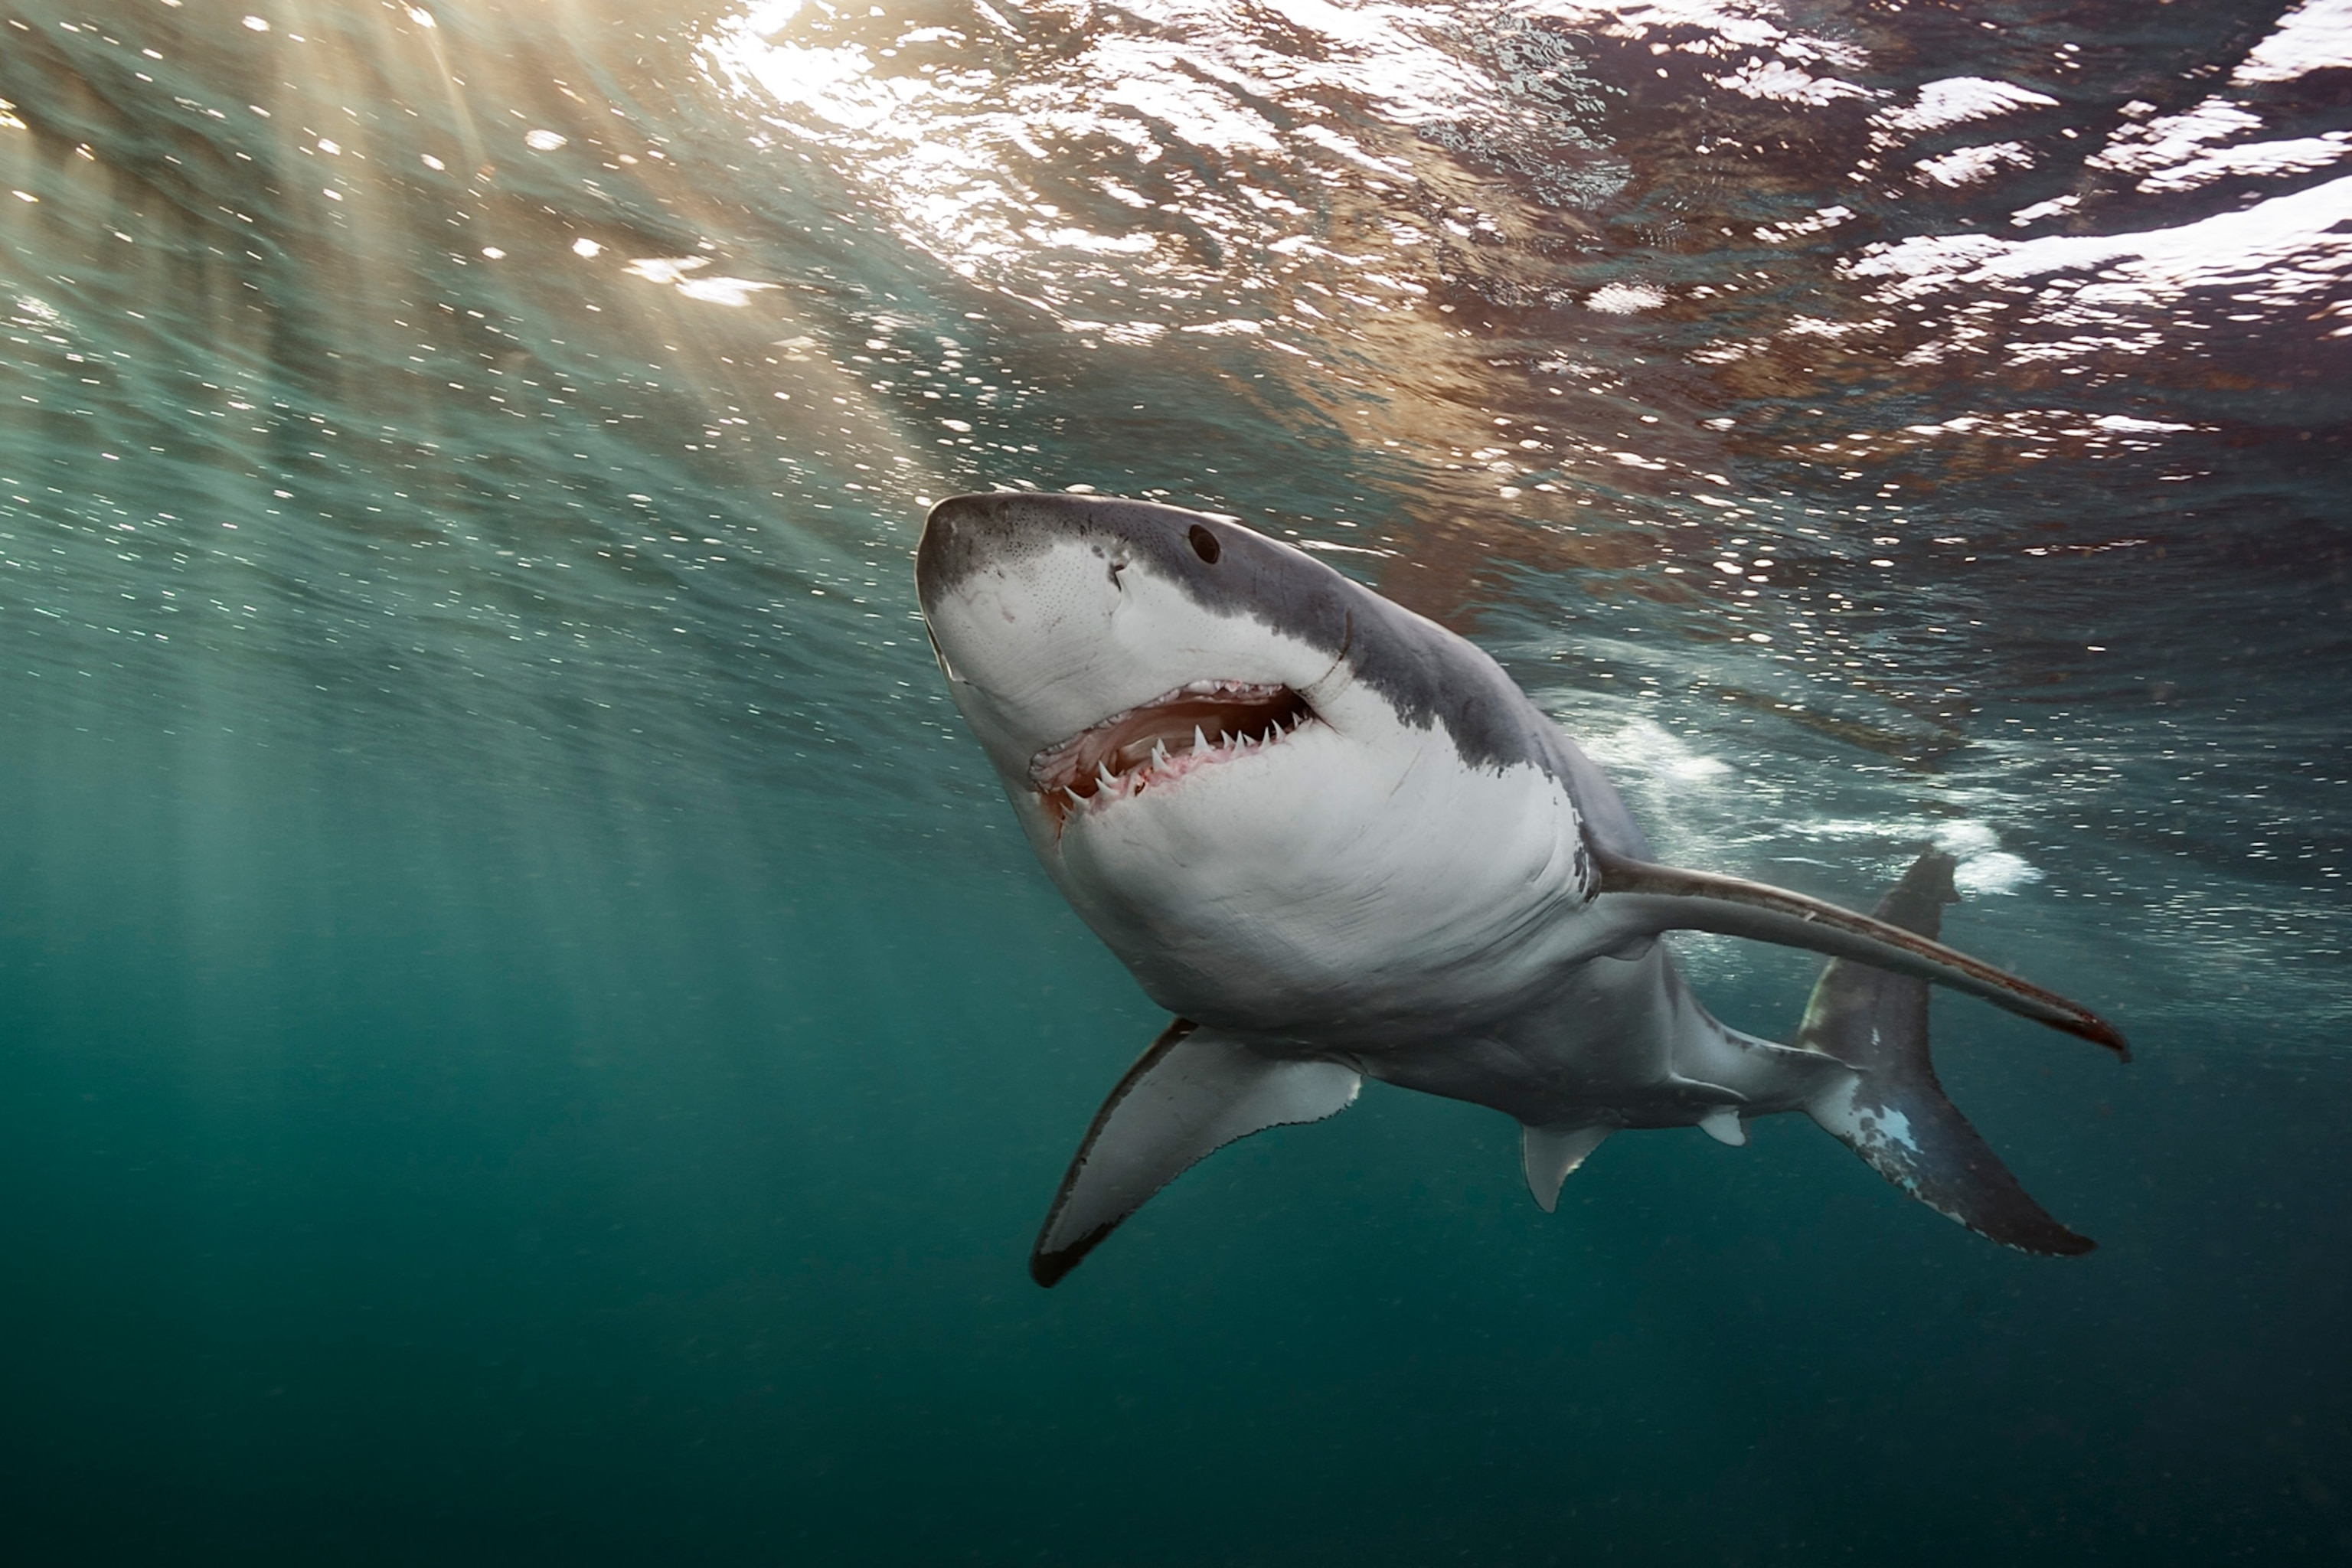 Shark Attacks Are More Common In The Atlantic Ocean